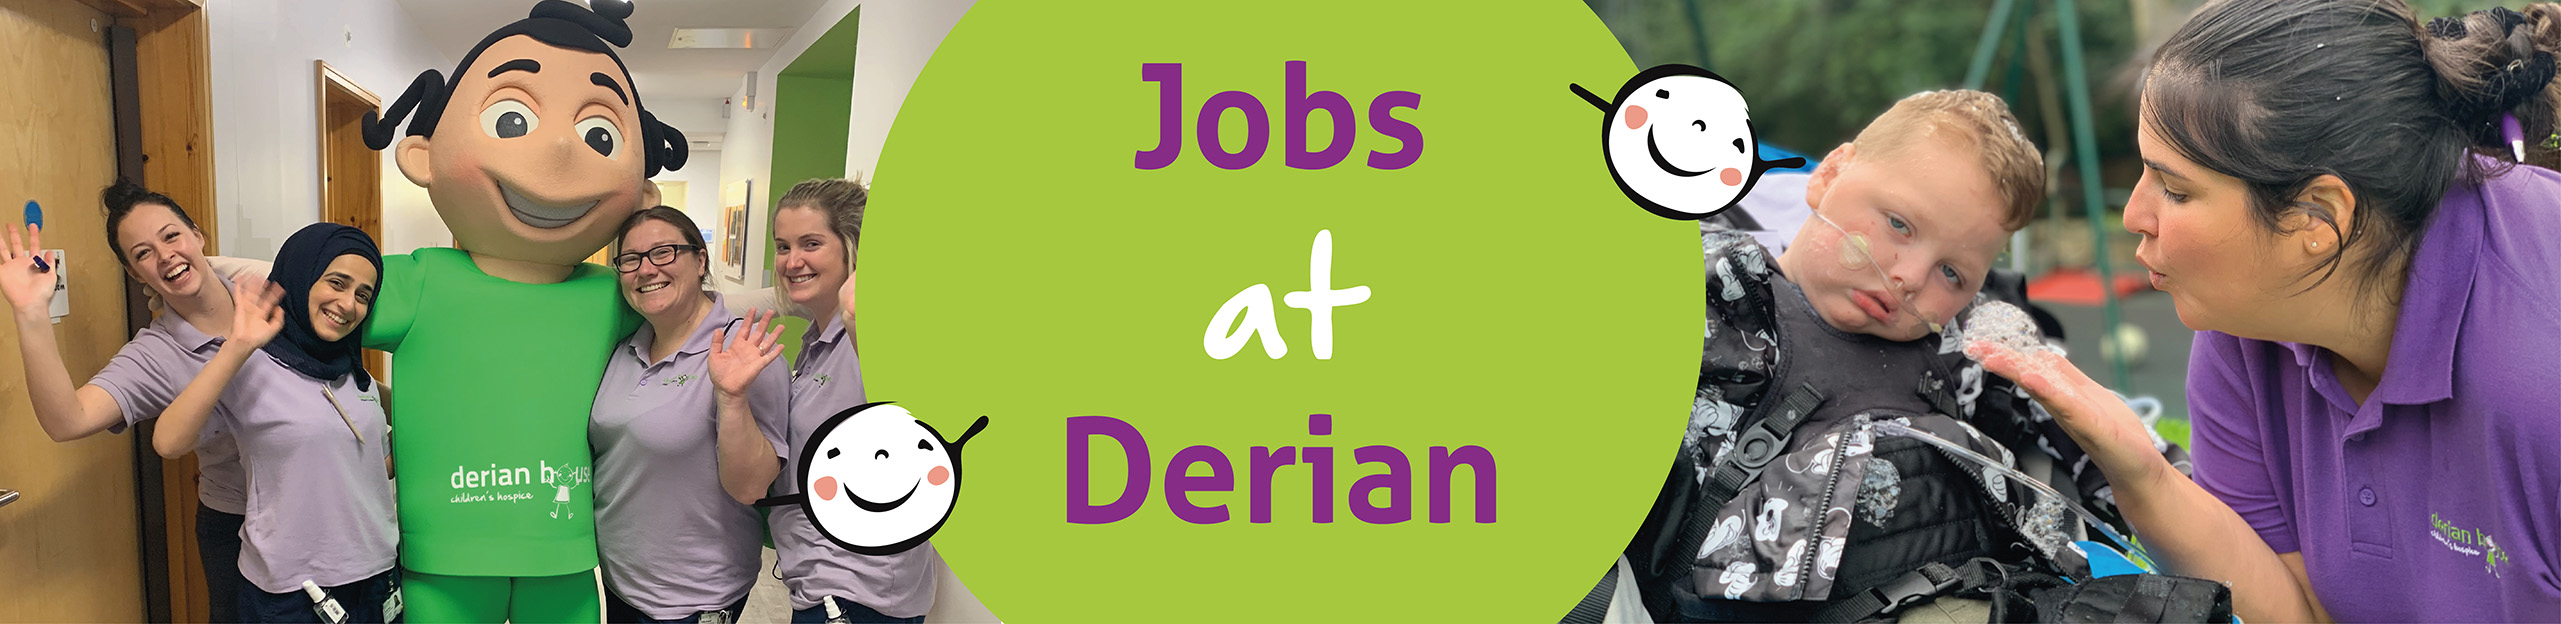 jobs at Derian House